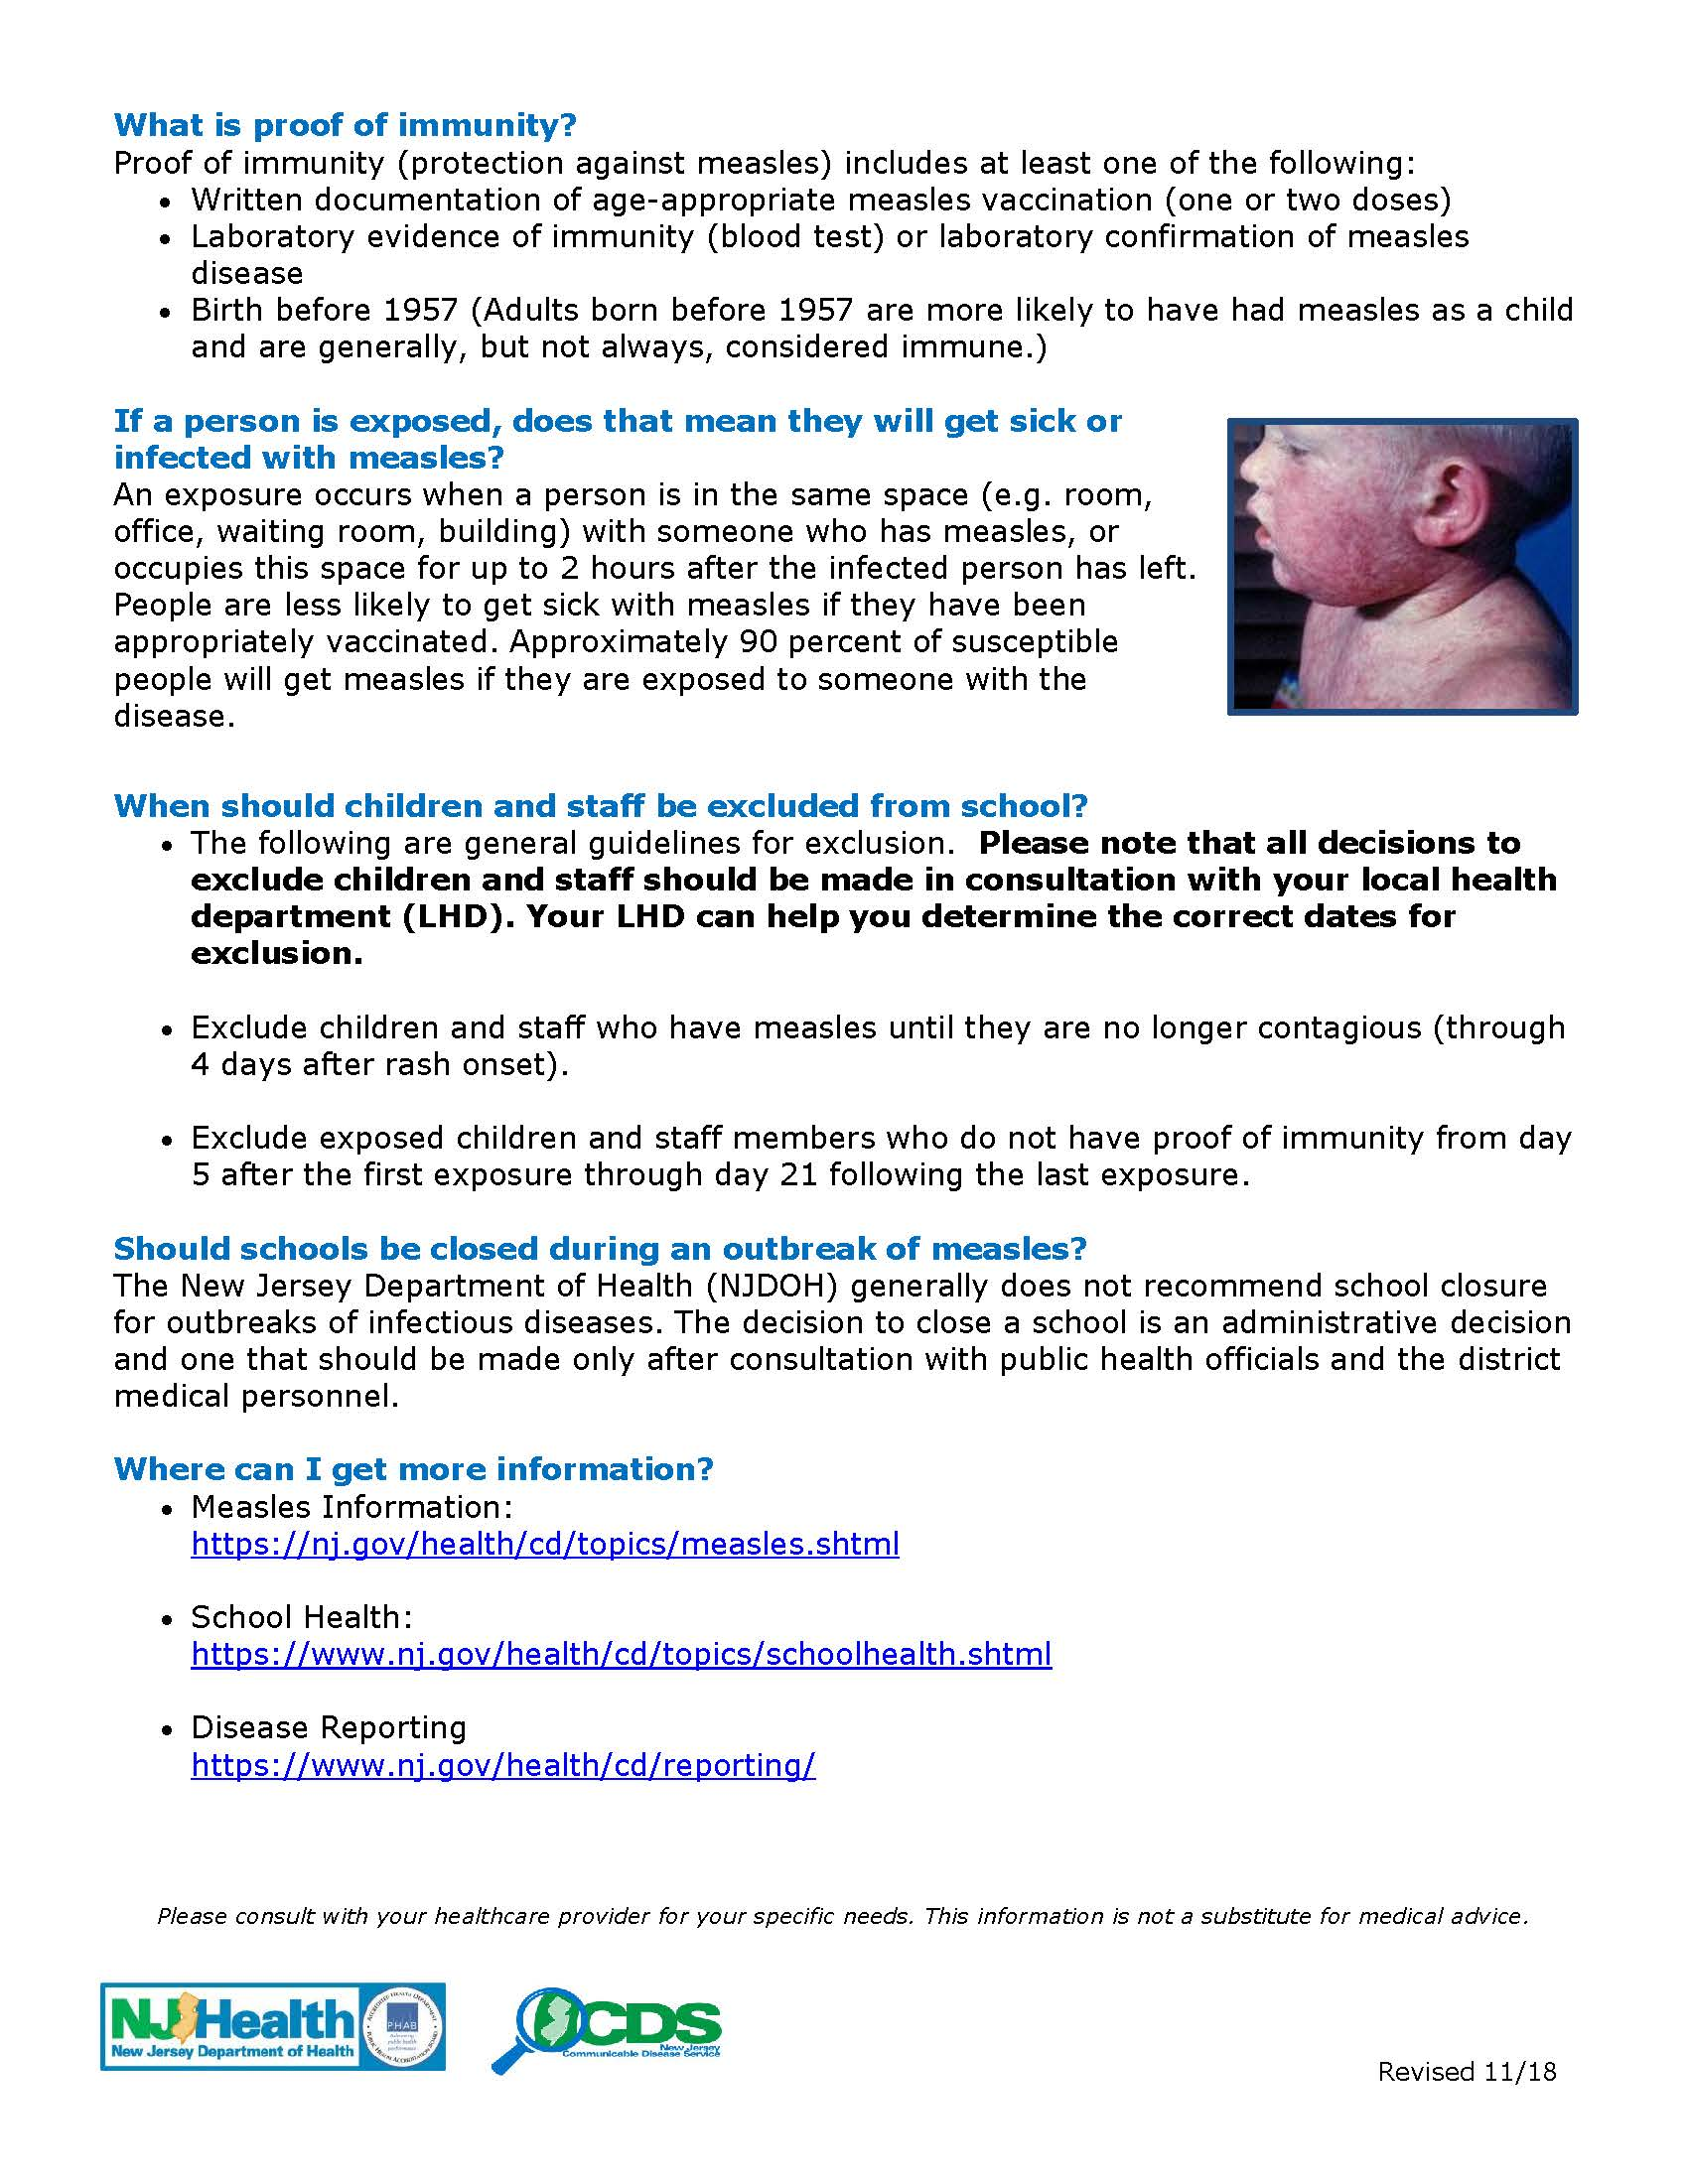 measles guidance schools Page 2